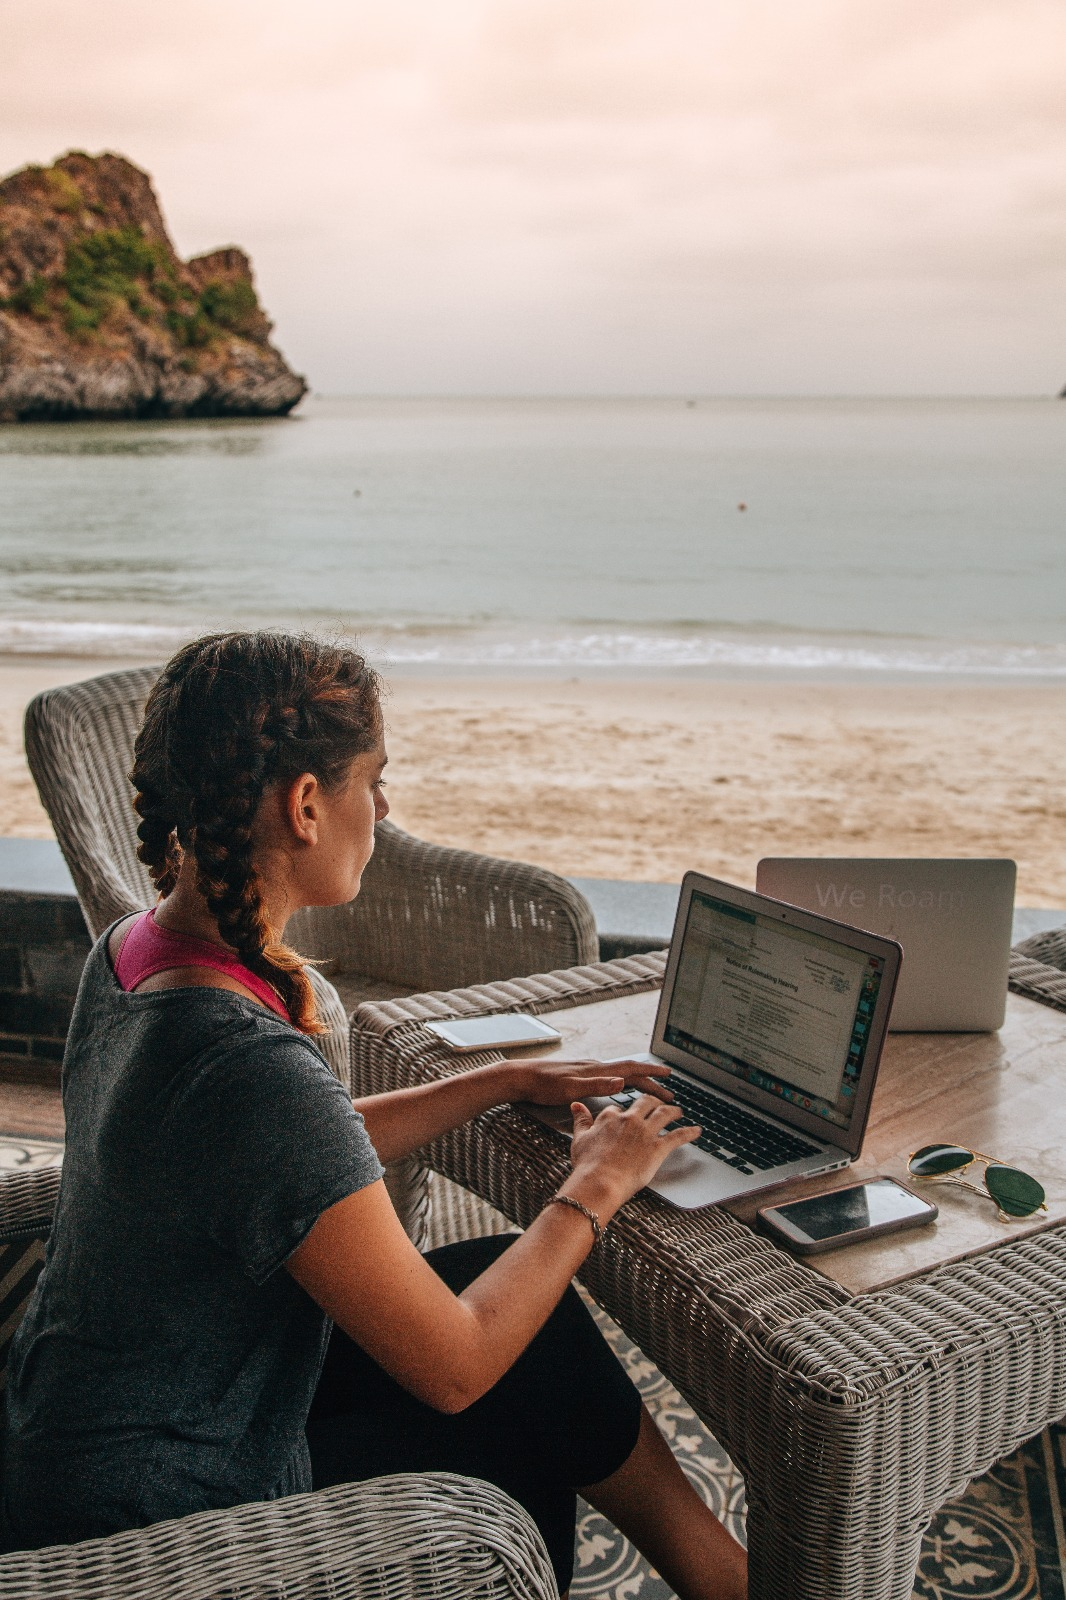 Digital Nomads and the Remote Work Revolution: Happier People, Better Business